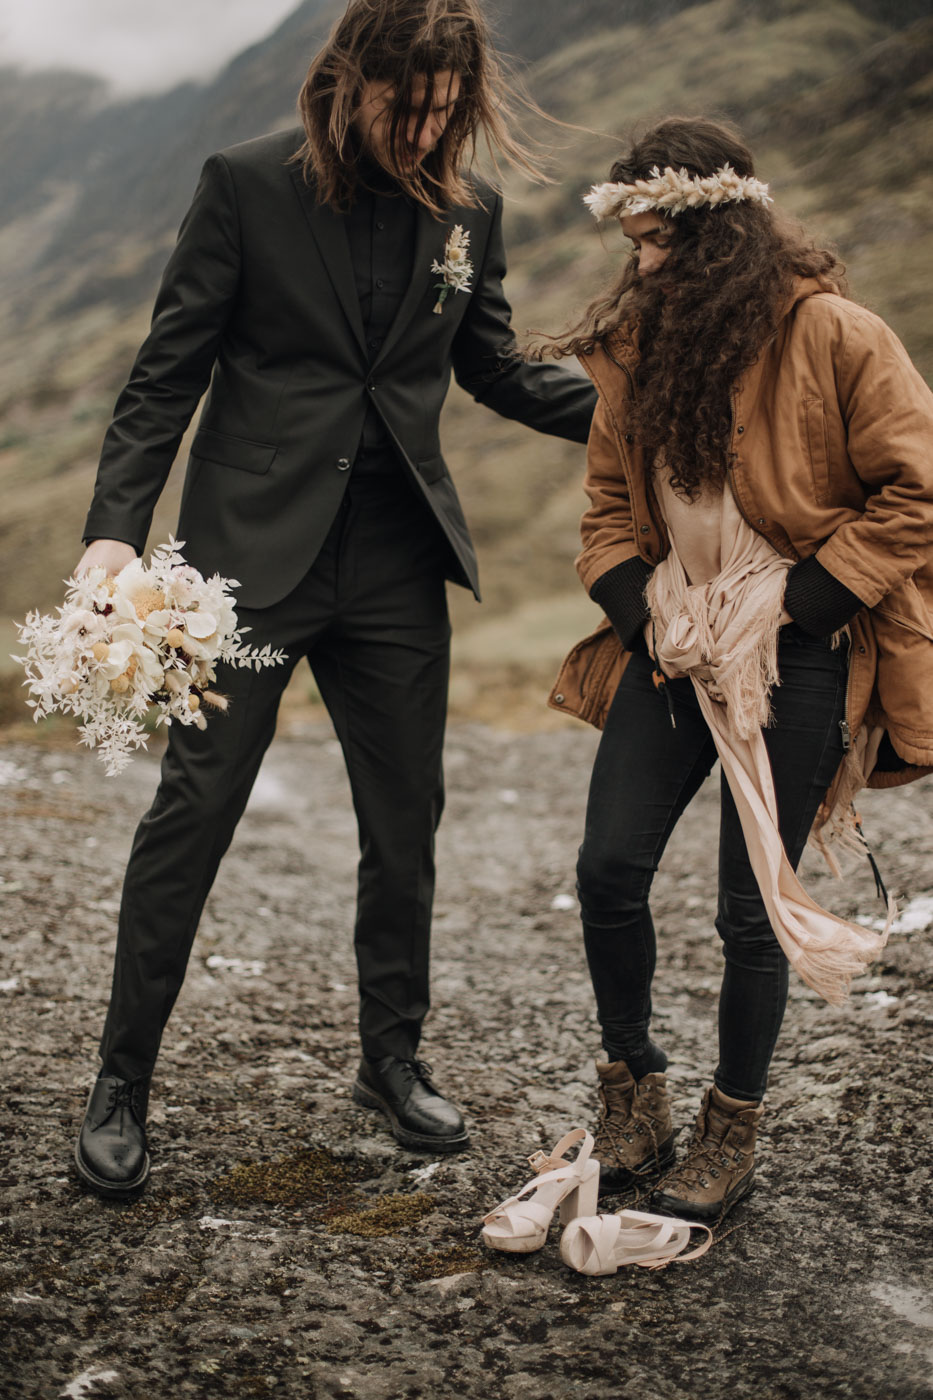 Hiking Elopement Scotland | Ceranna Photography